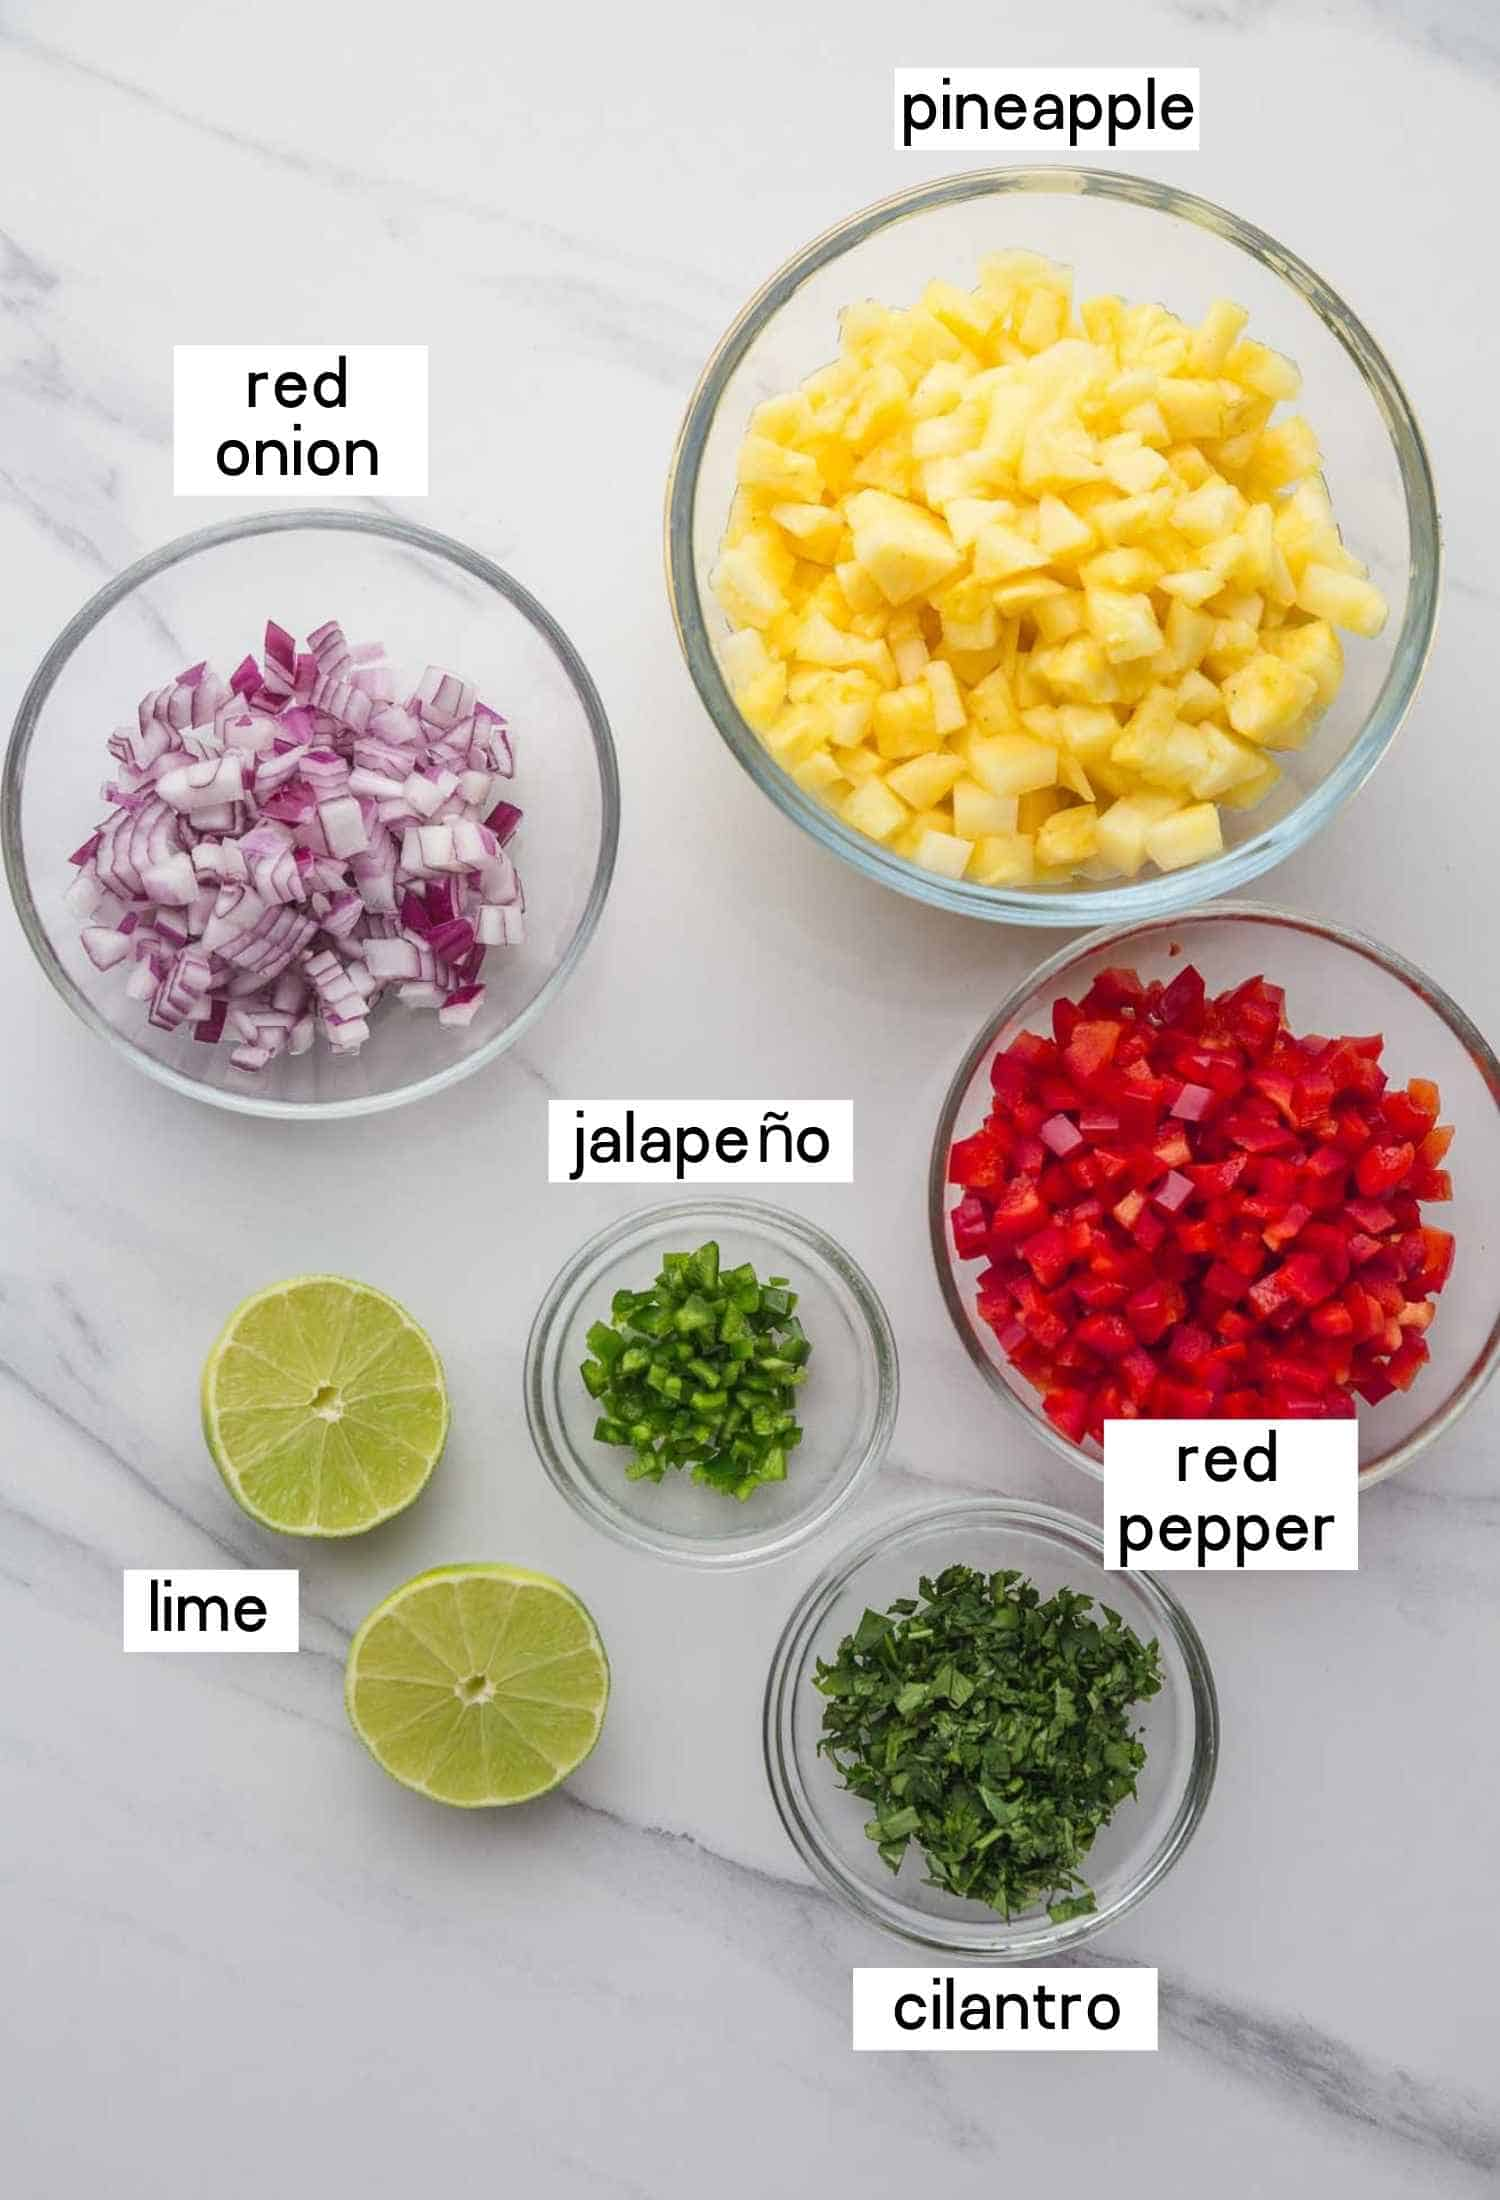 Ingredients needed to make this recipe: pineapple, red onion, red pepper, jalapeño, cilantro and limes.